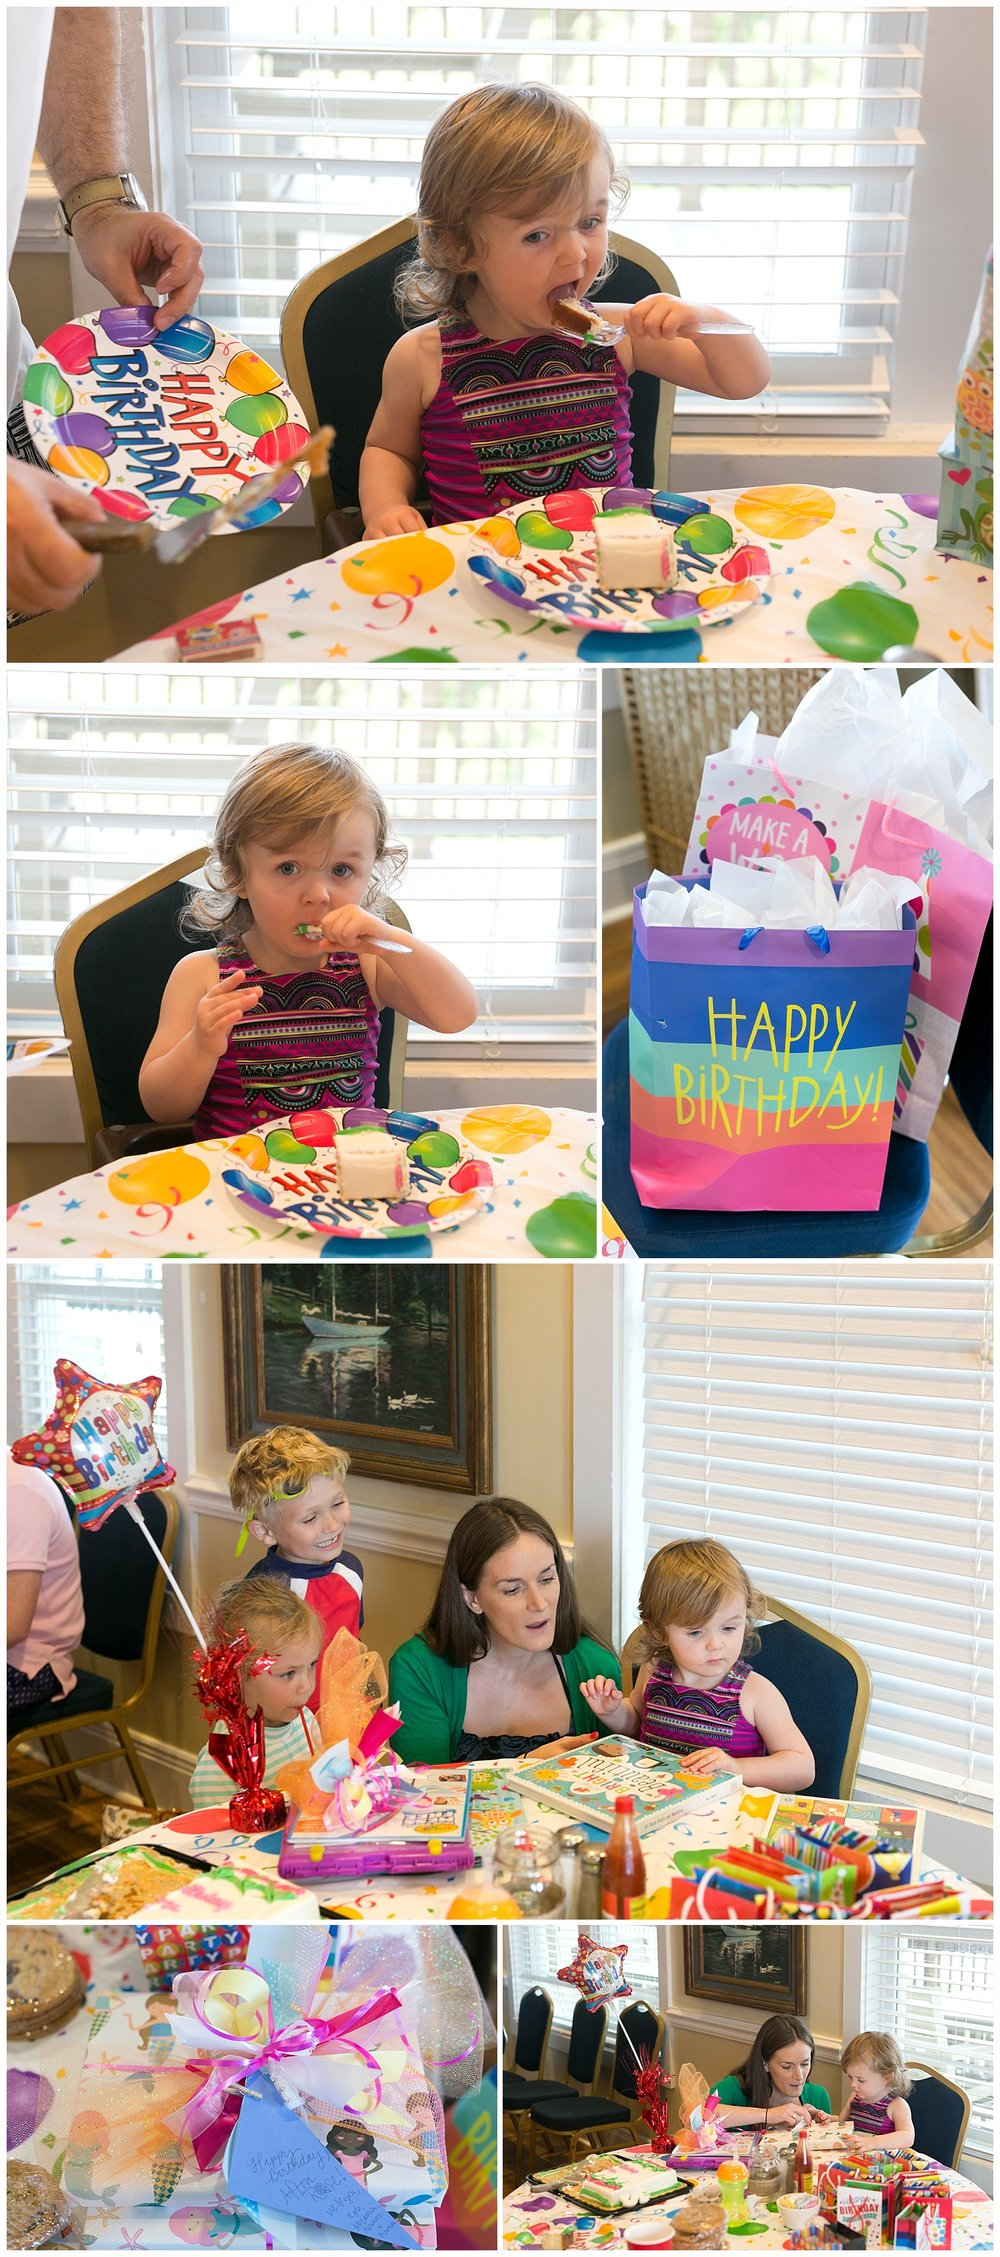 two-year-old celebrating birthday at Ocean Springs Yacht Club - cake and presents